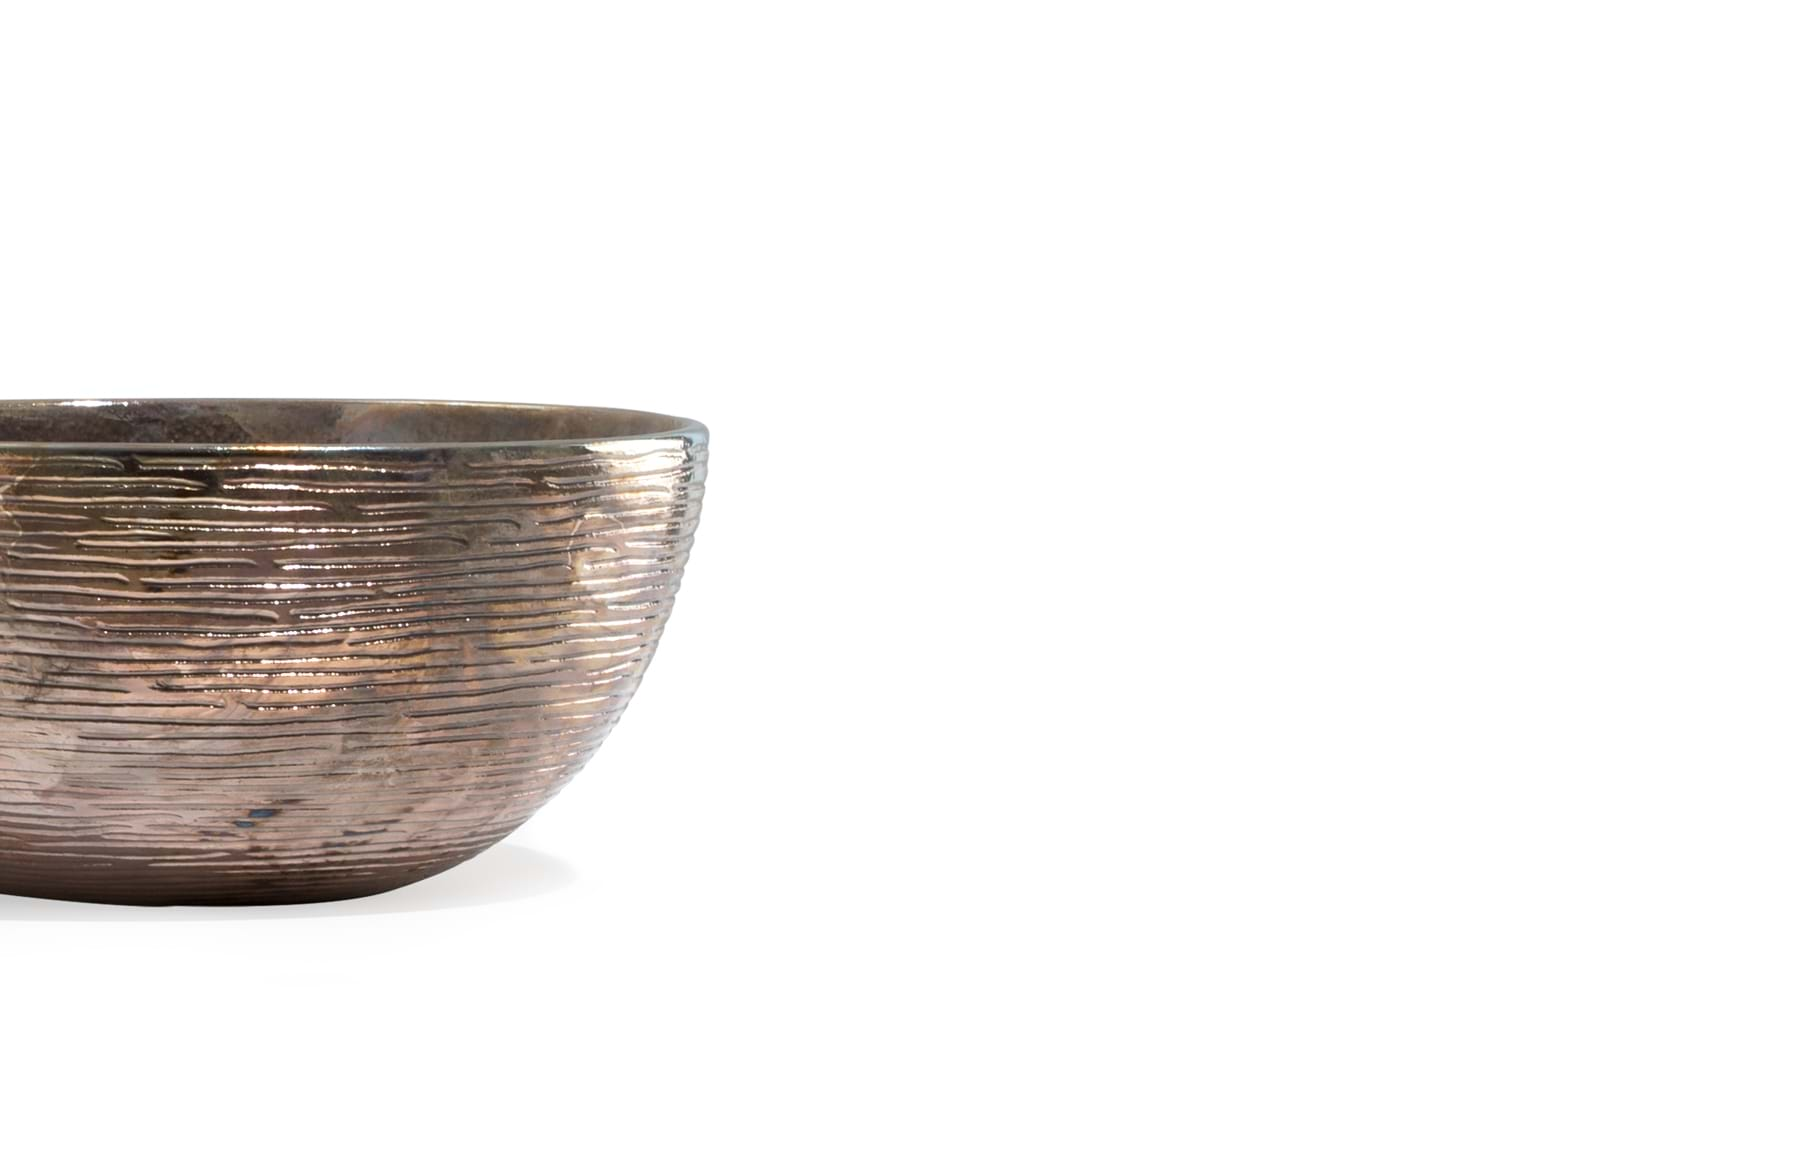 Bowl - Accessories - Giorgetti 1